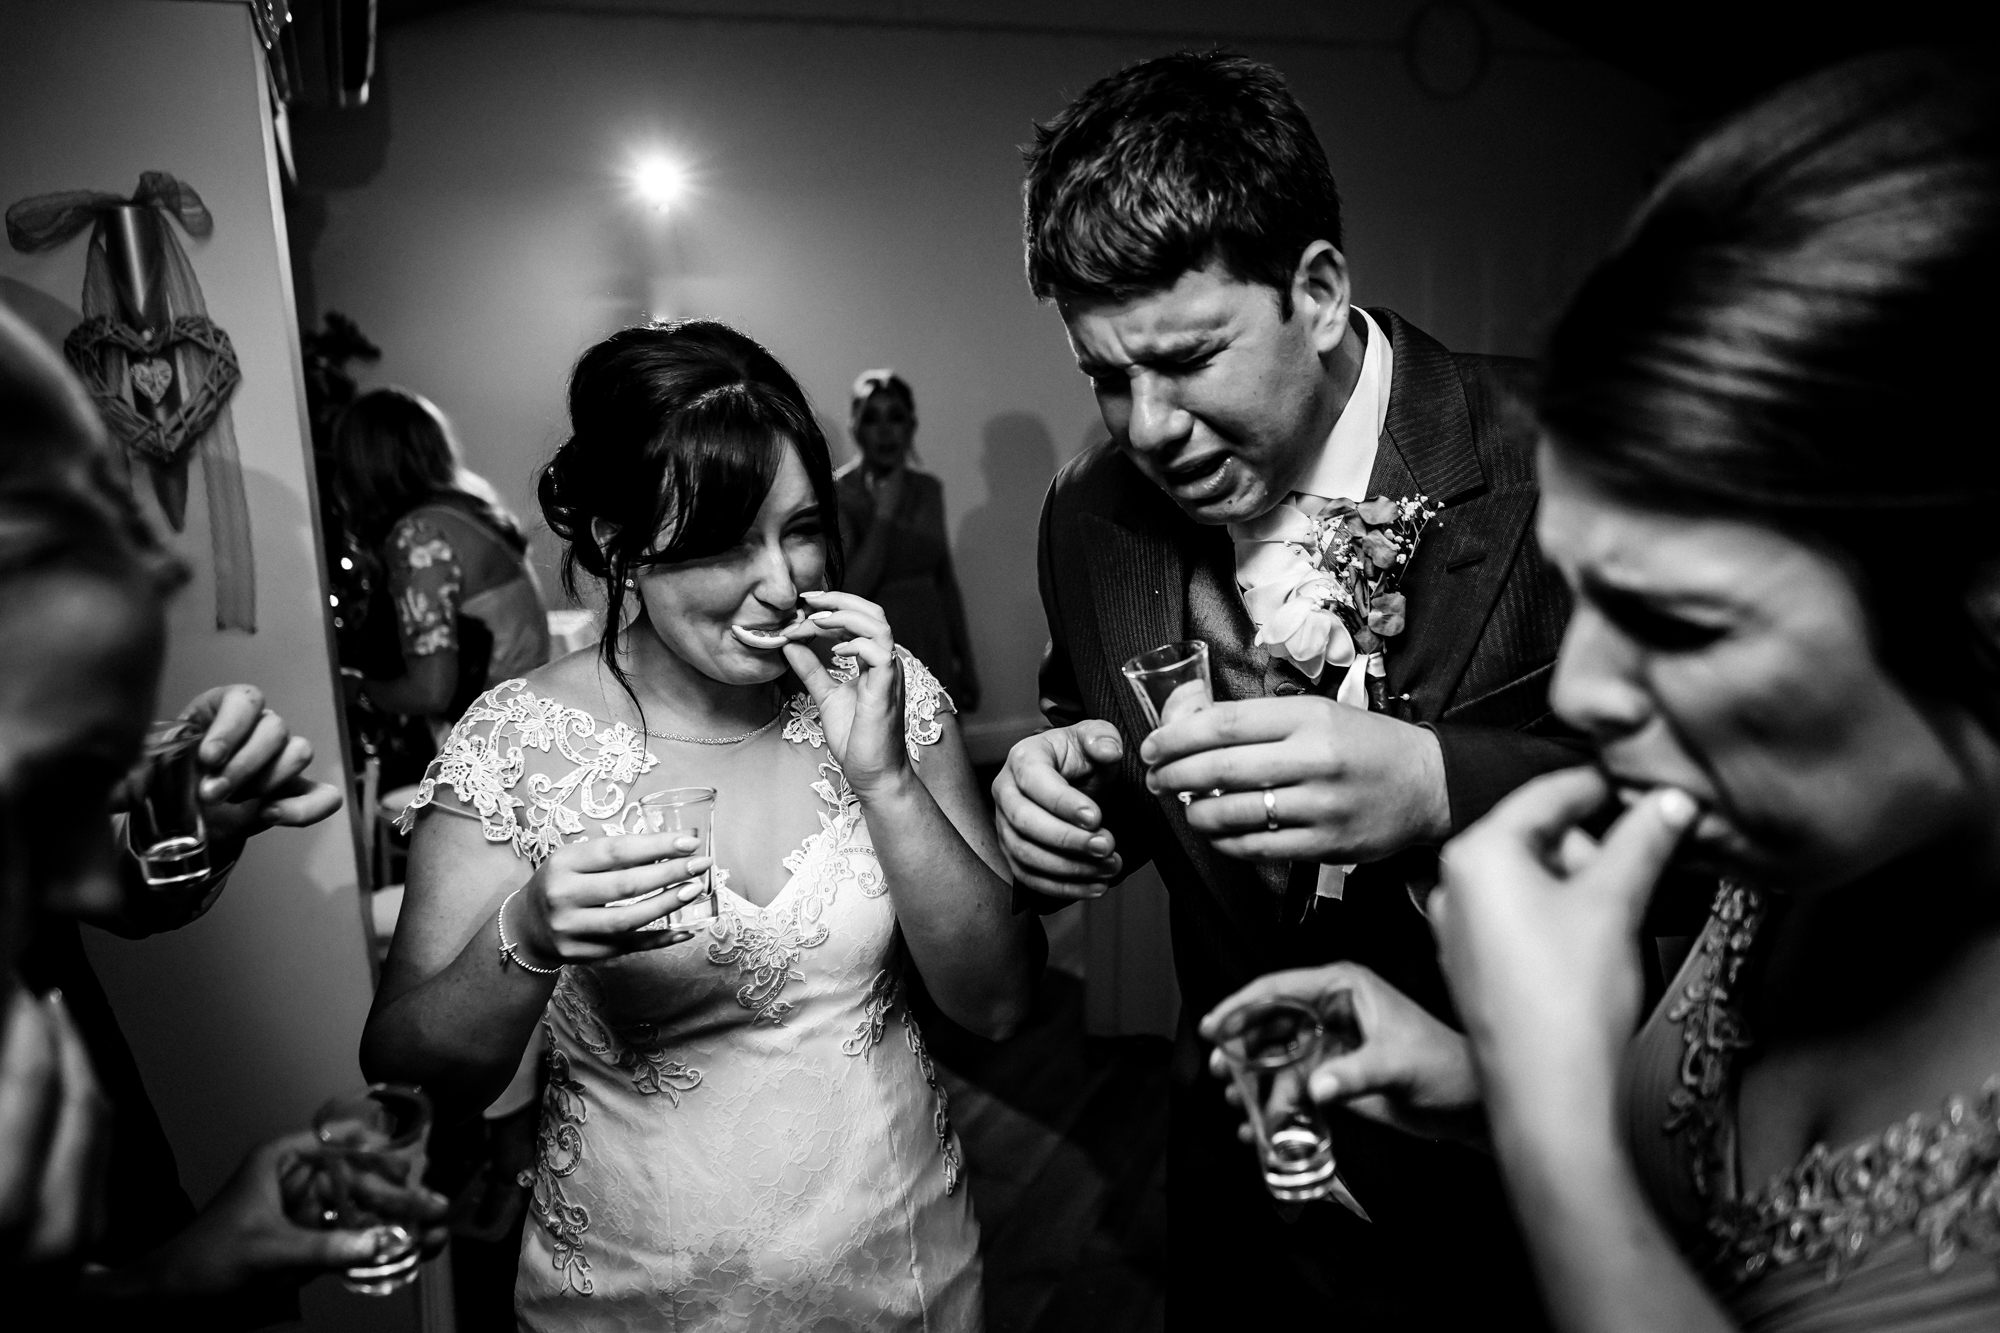 Mere Court Hotel Wedding Photography Cheshire wedding photographer (41 of 45).jpg